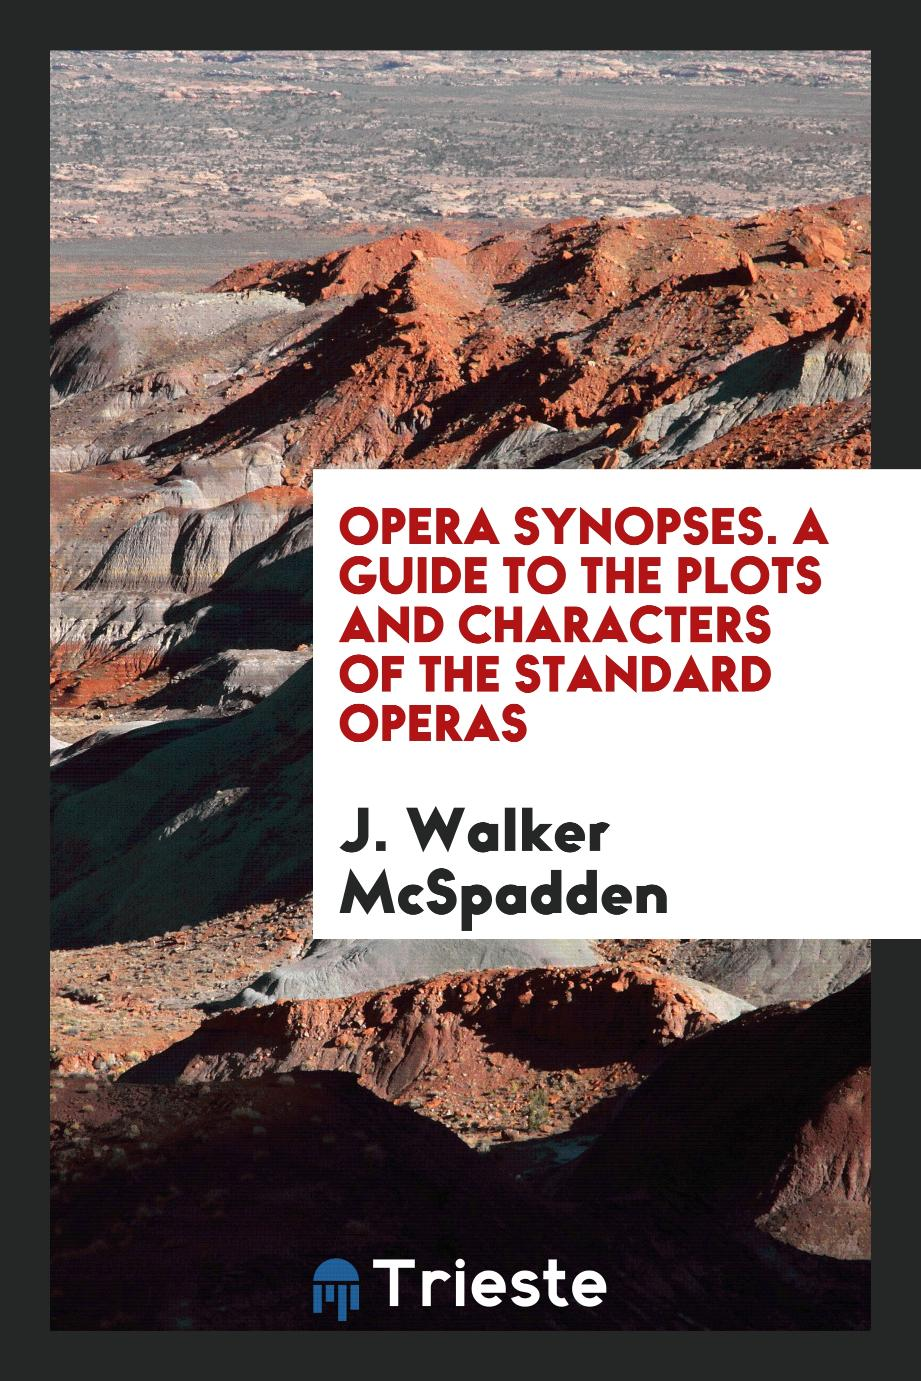 Opera Synopses. A Guide to the Plots and Characters of the Standard Operas